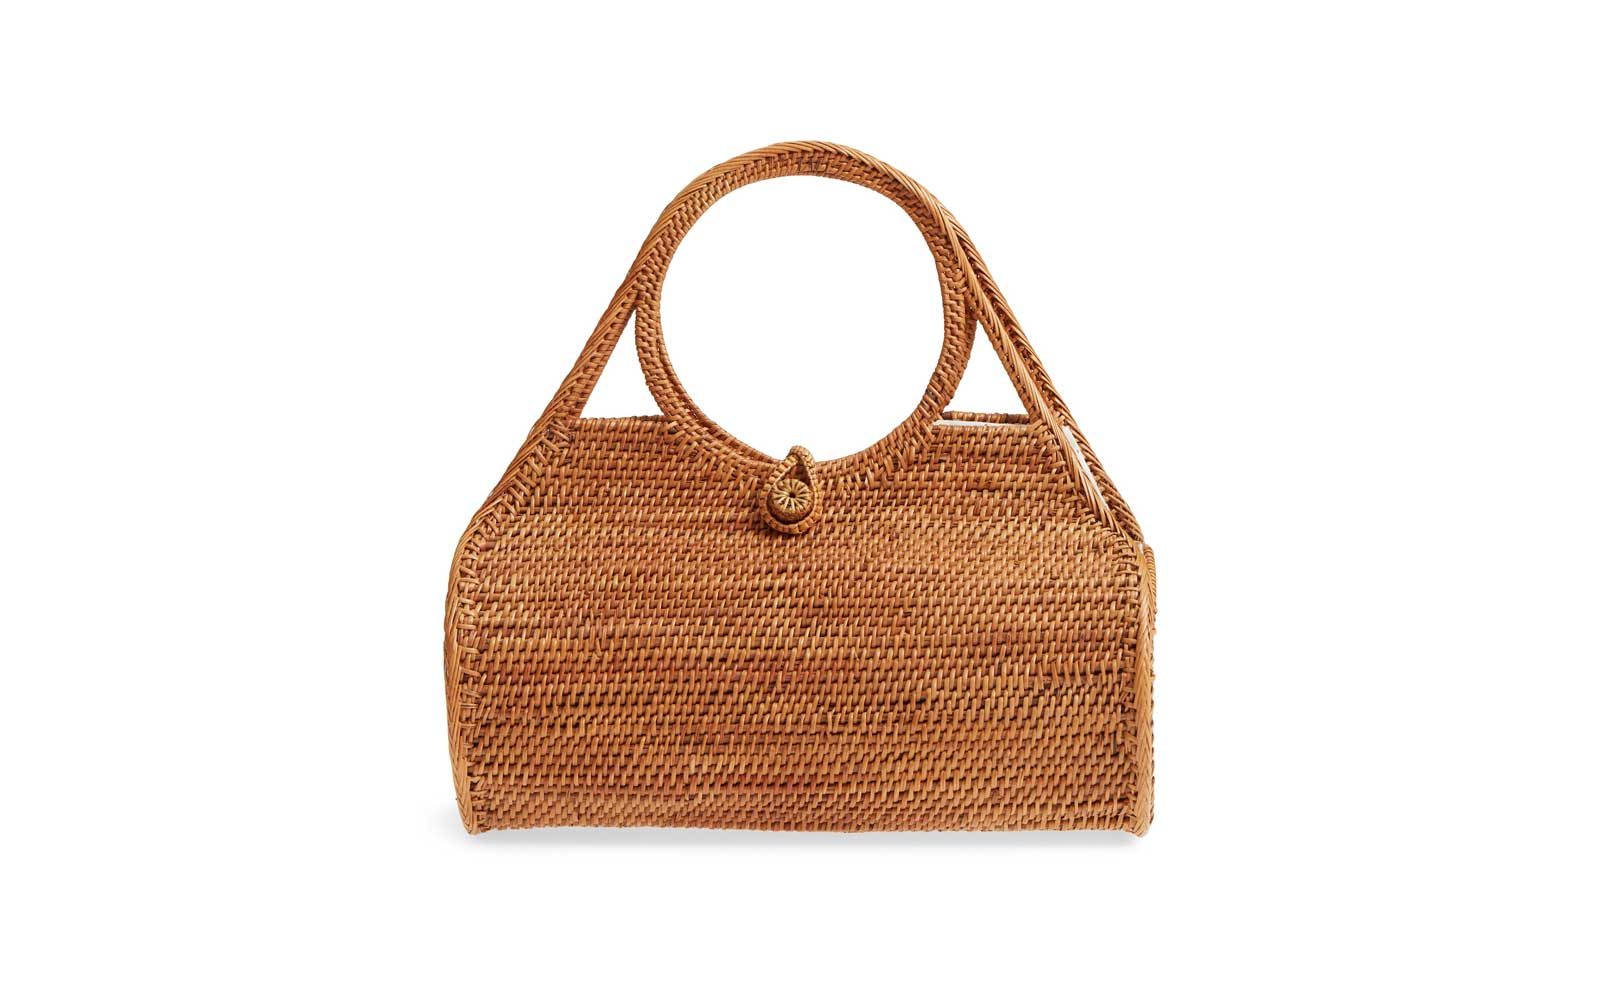 Street Level Woven Rattan Handbag